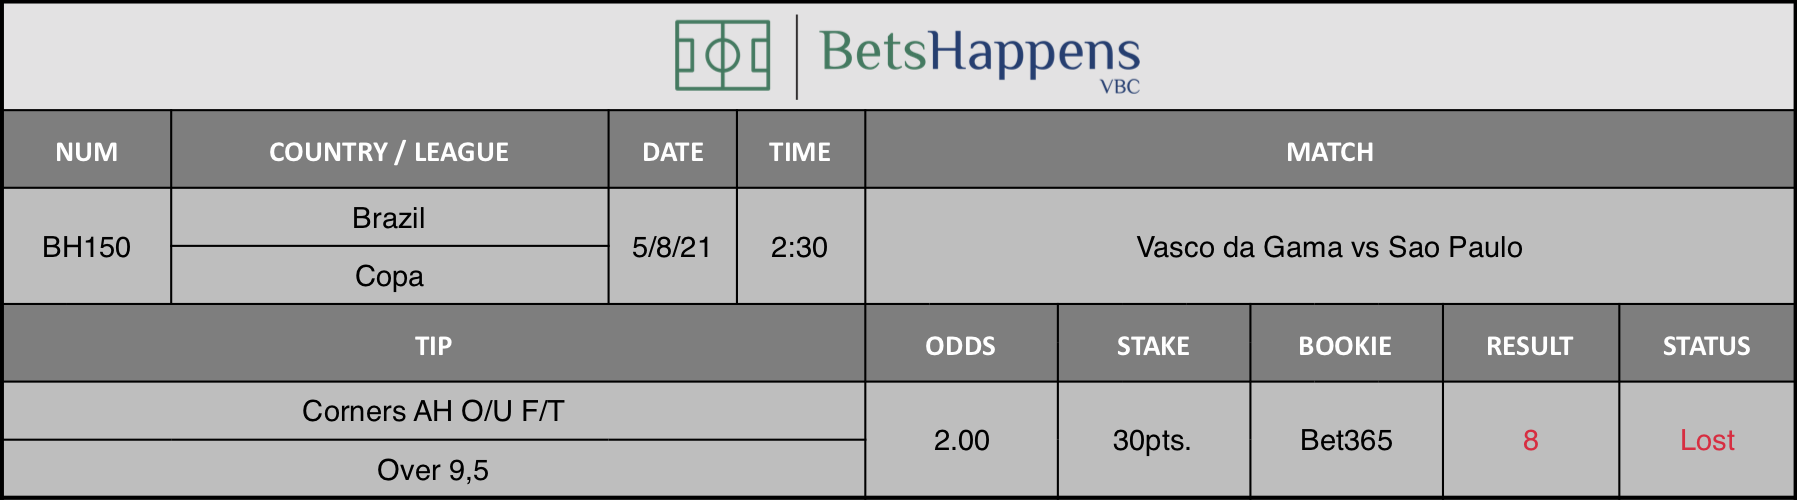 Results of our advice for the Vasco da Gama vs Sao Paulo match in which Corners AH O/U F/T Over 9,5 is recommended.